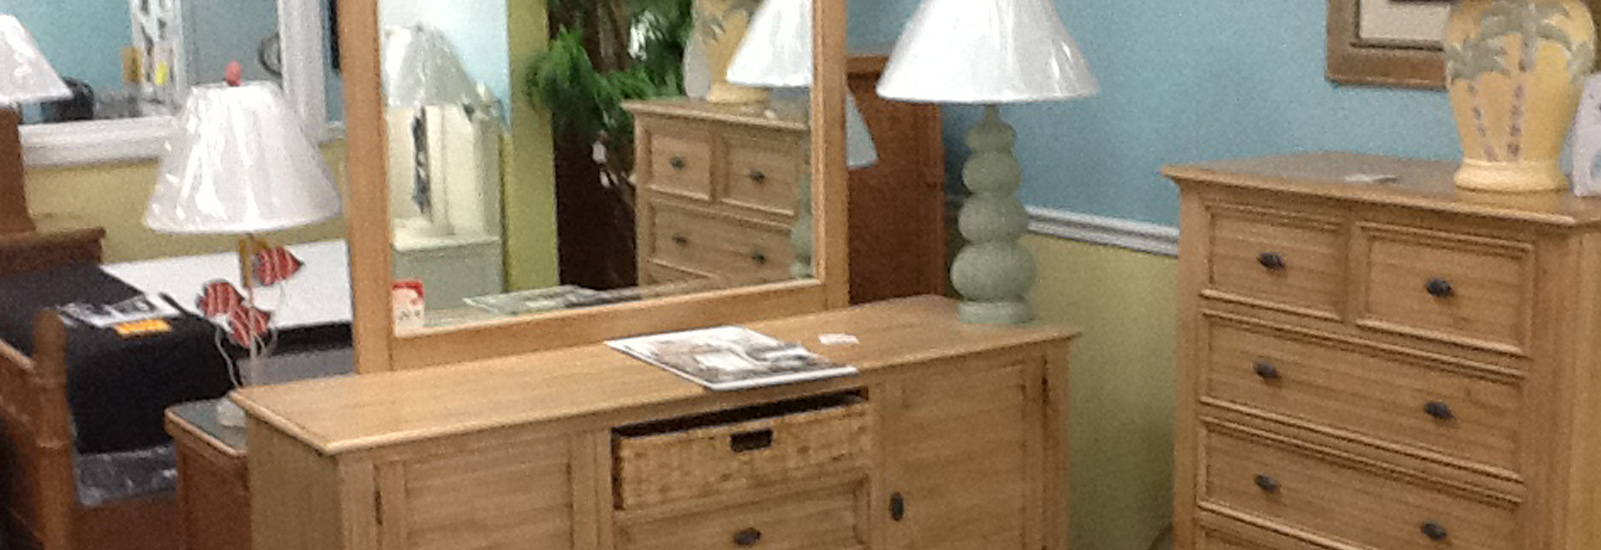 Cape coral discount furniture furniture to fit your for Affordable furniture florida